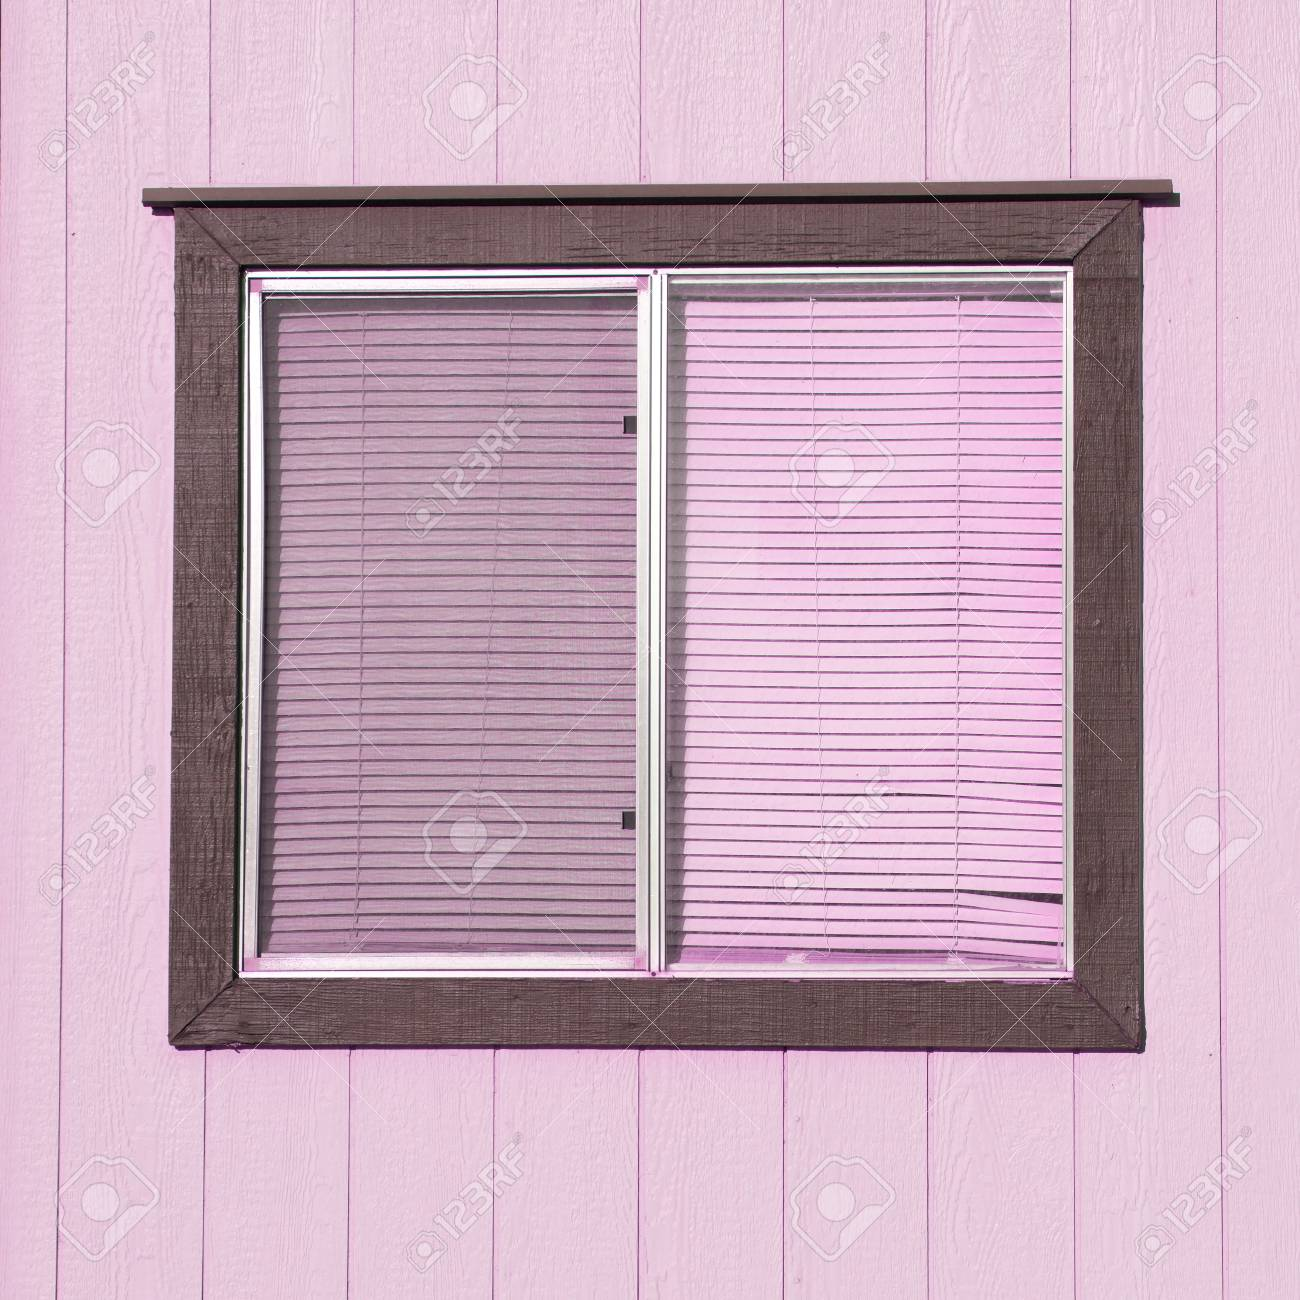 plastic window blinds hard plastic old window with plastic blinds on wood walls stock photo 78600962 old window with plastic blinds on wood walls